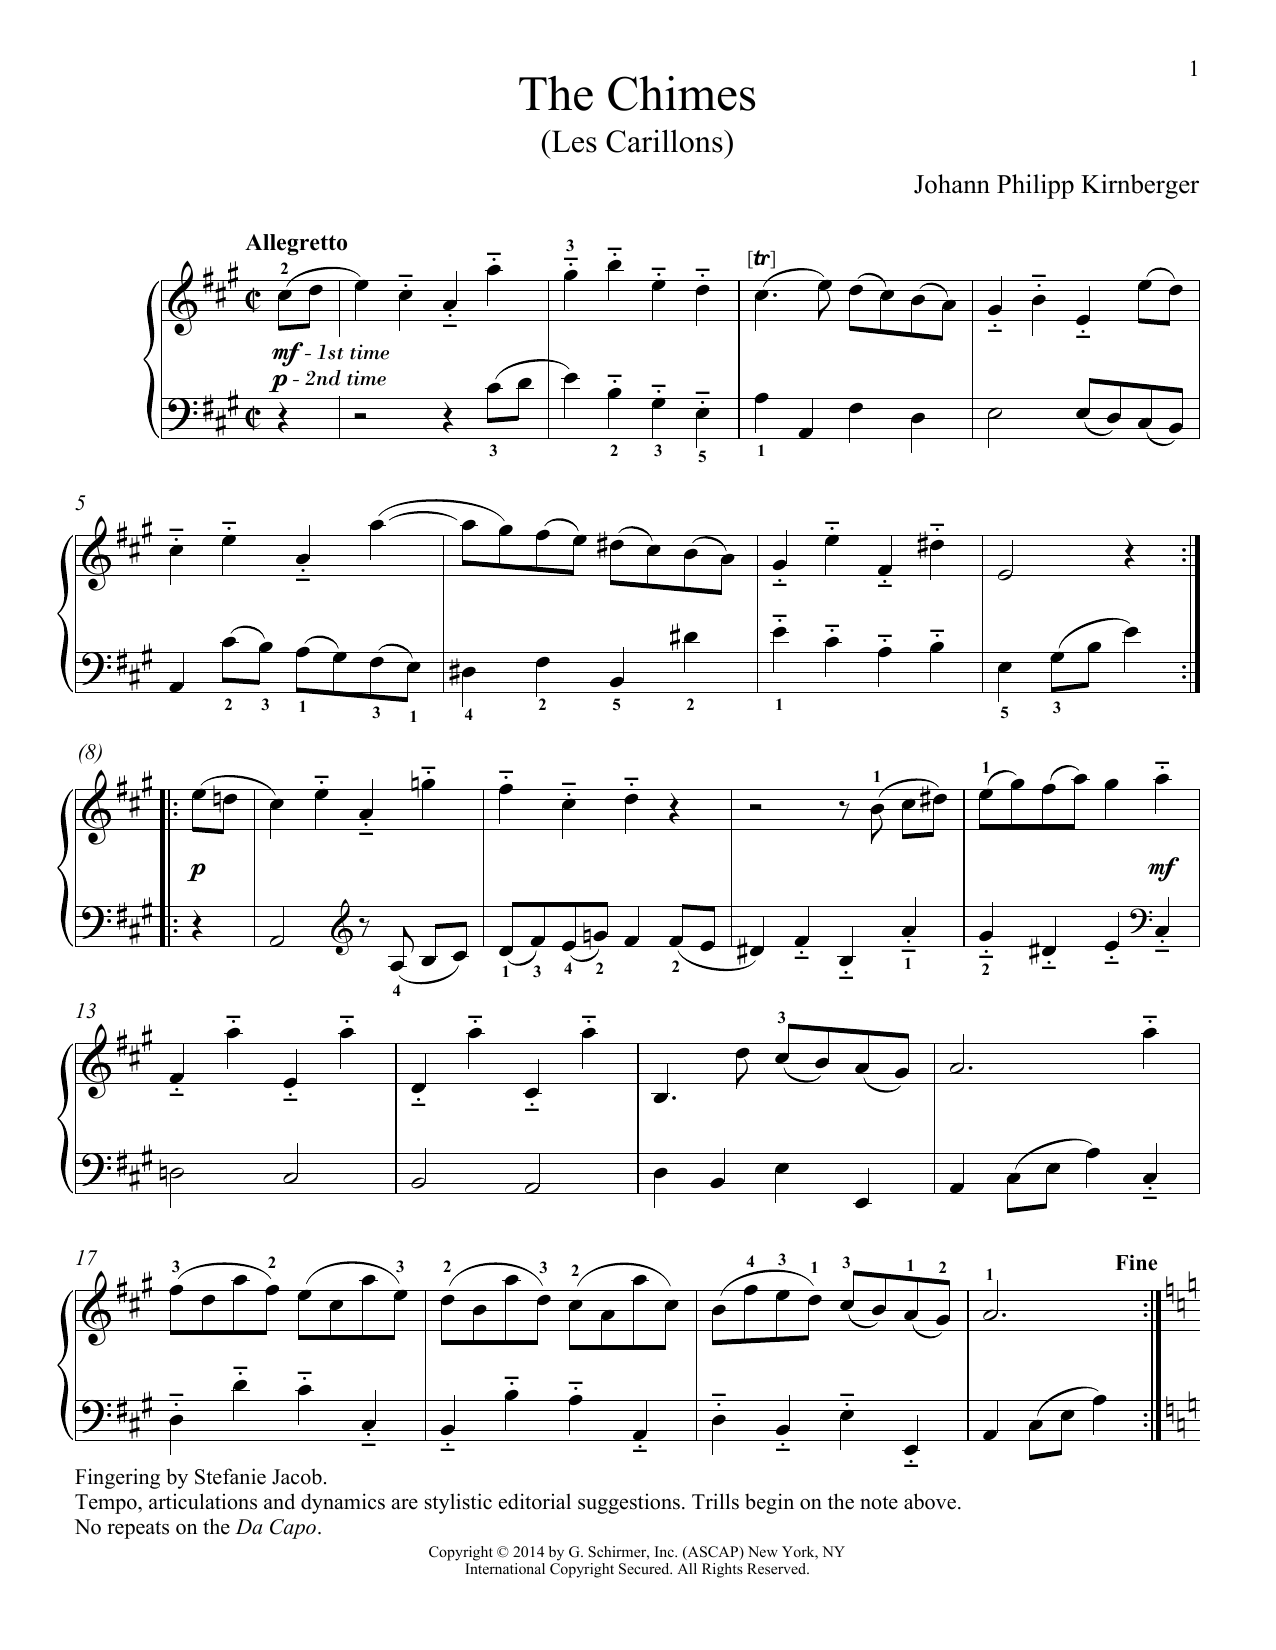 Les Carillons sheet music for piano solo by Richard Walters